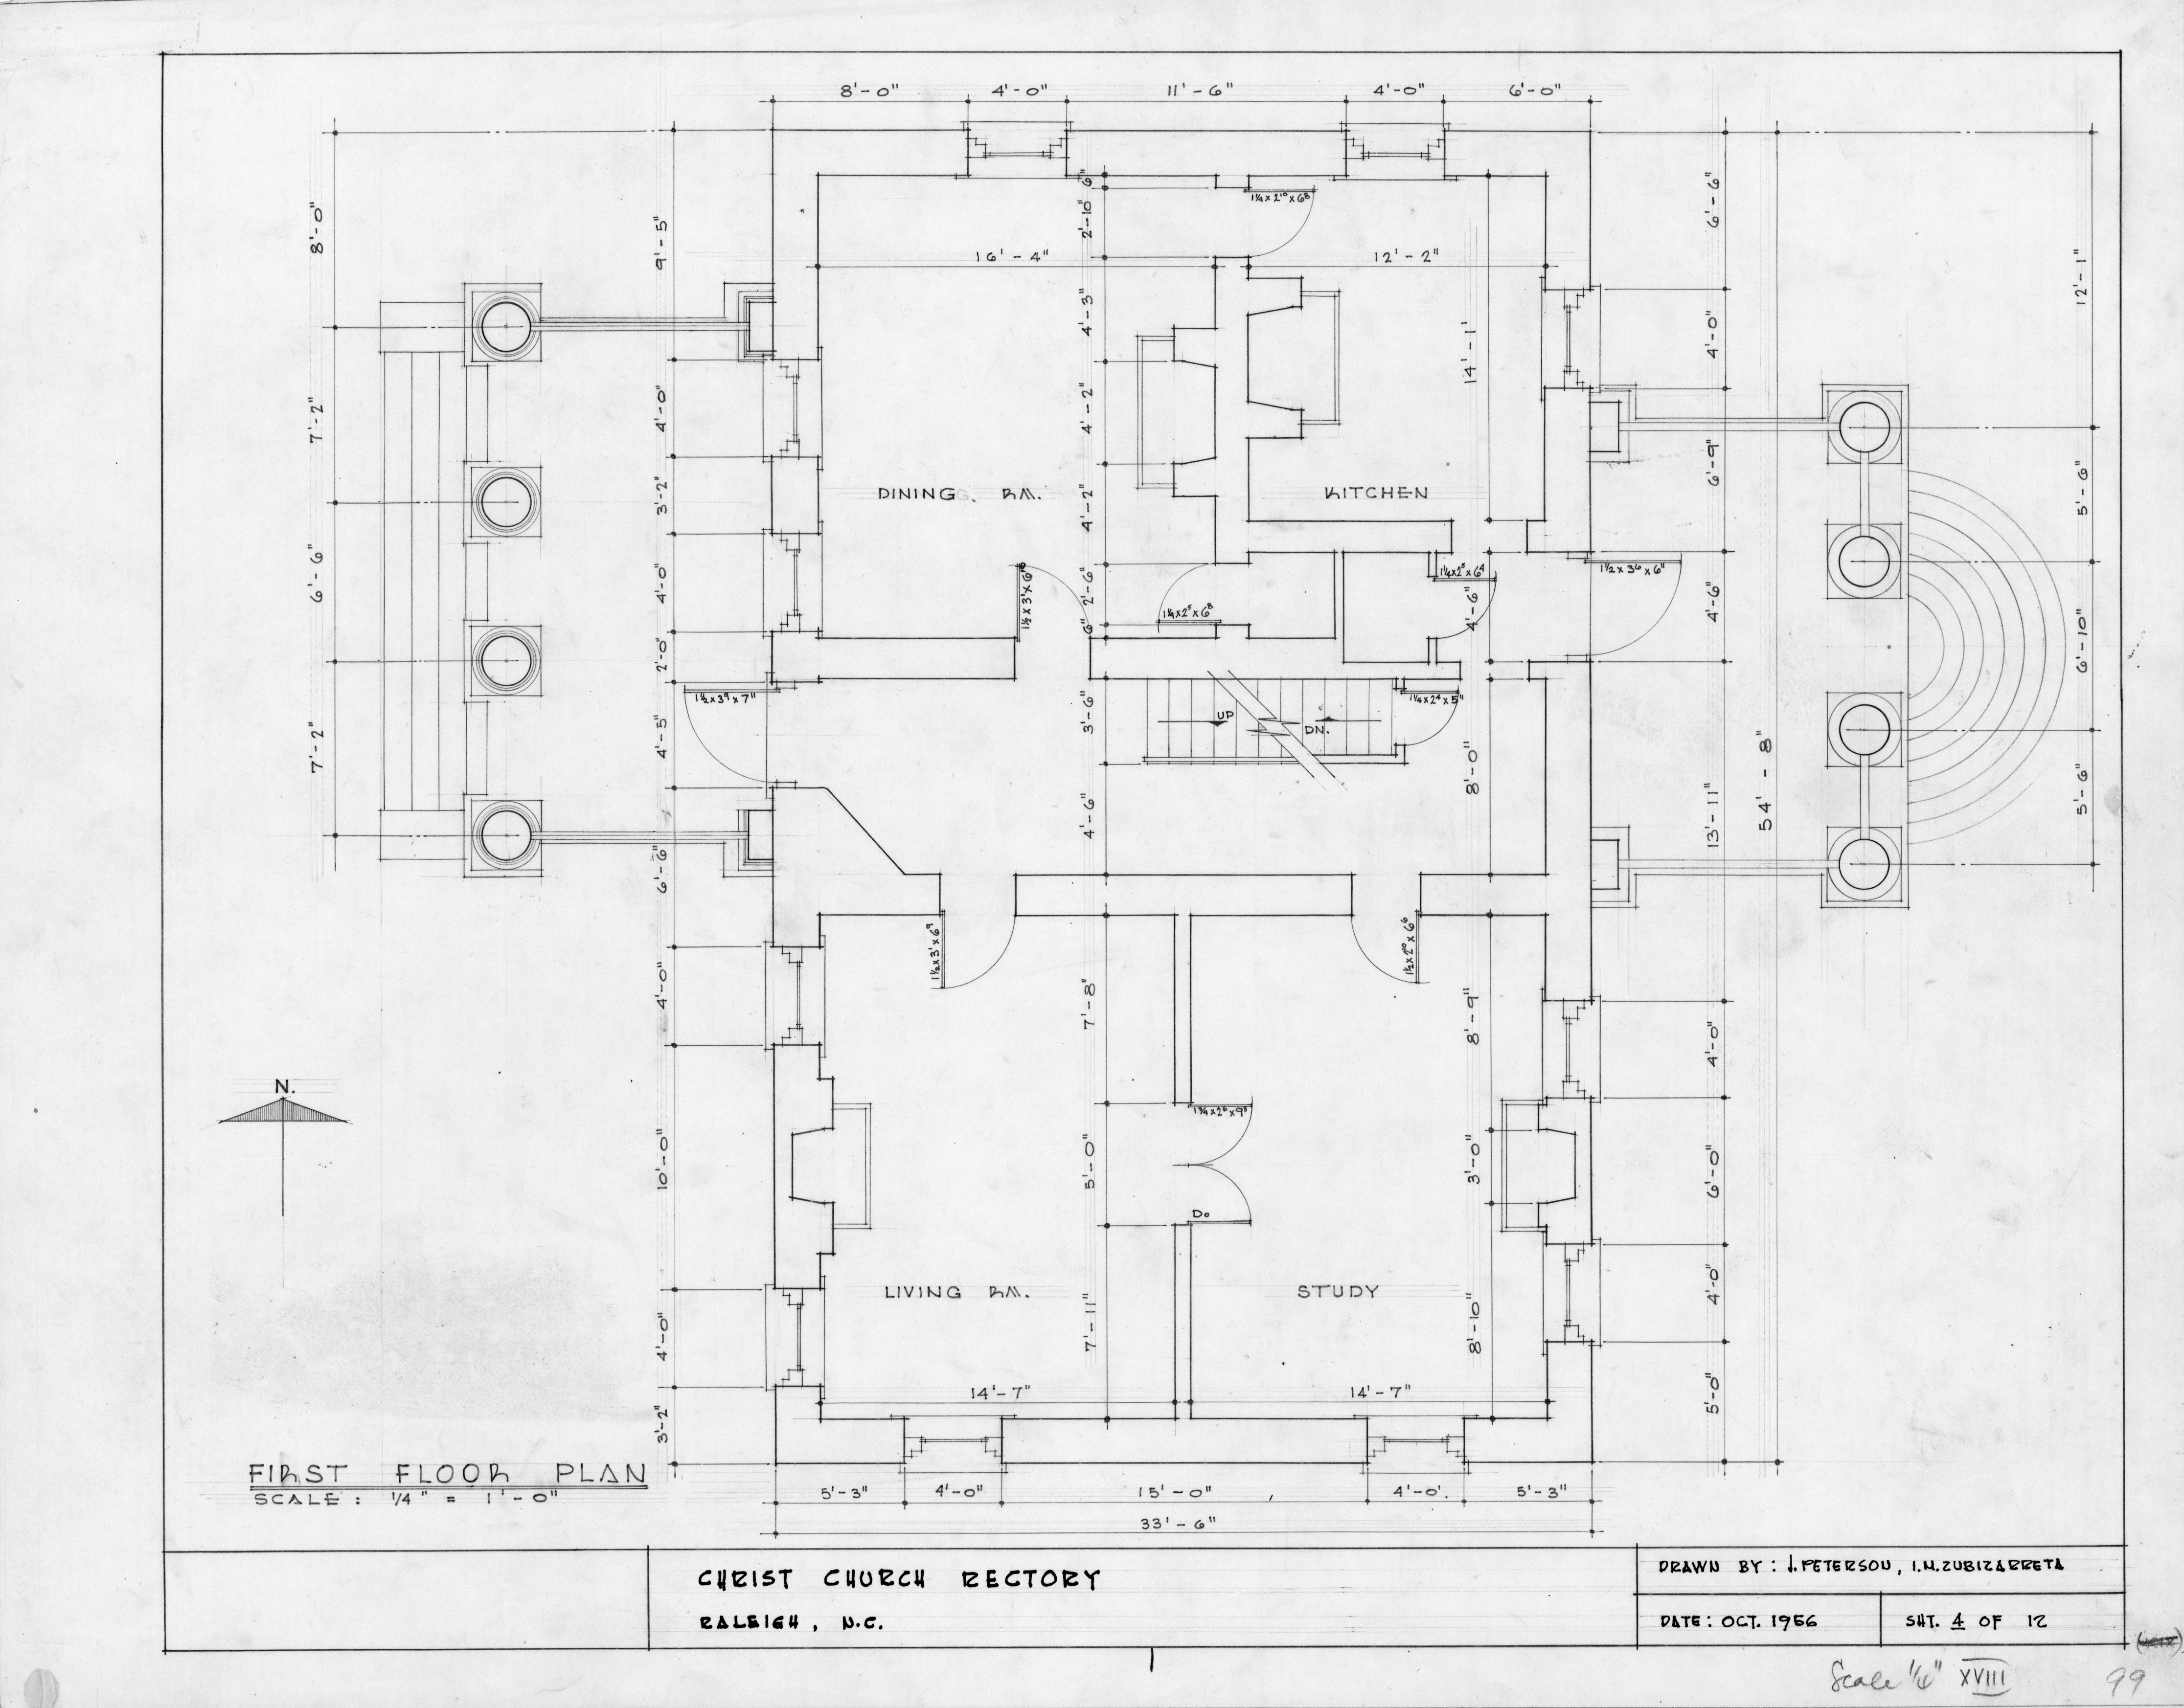 First floor plan, State Bank of North Carolina, Raleigh